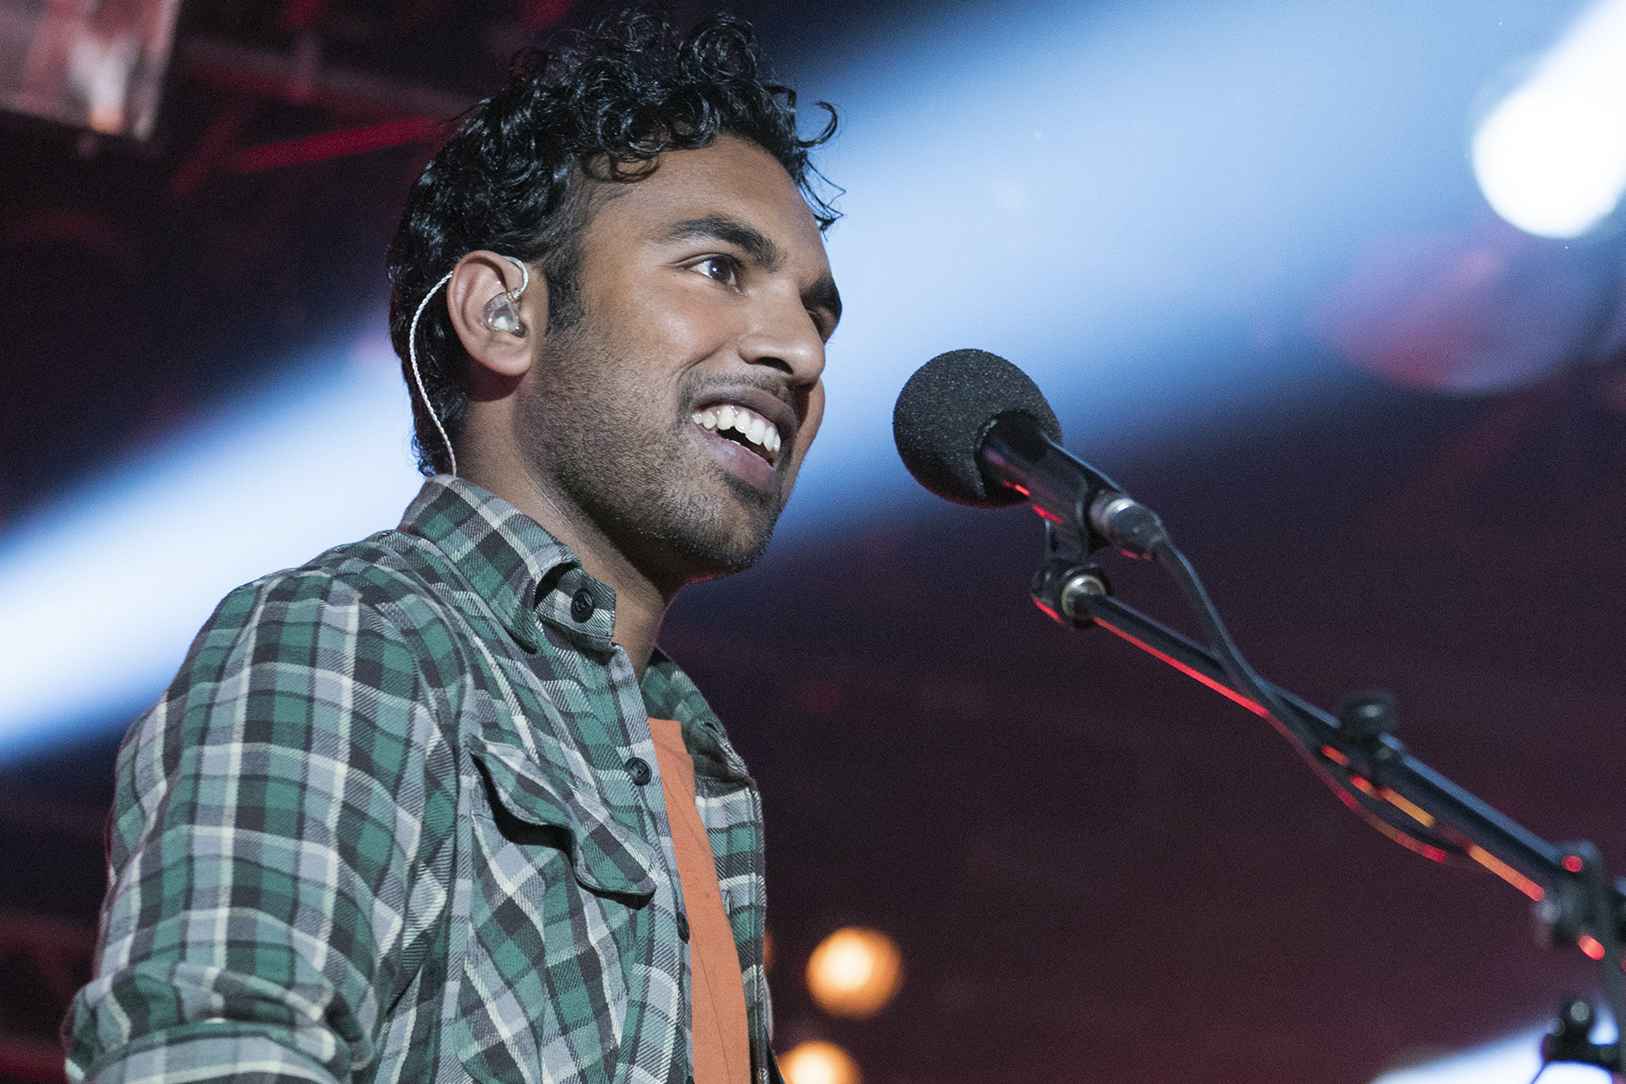 Himesh Patel stars in a scene from the movie